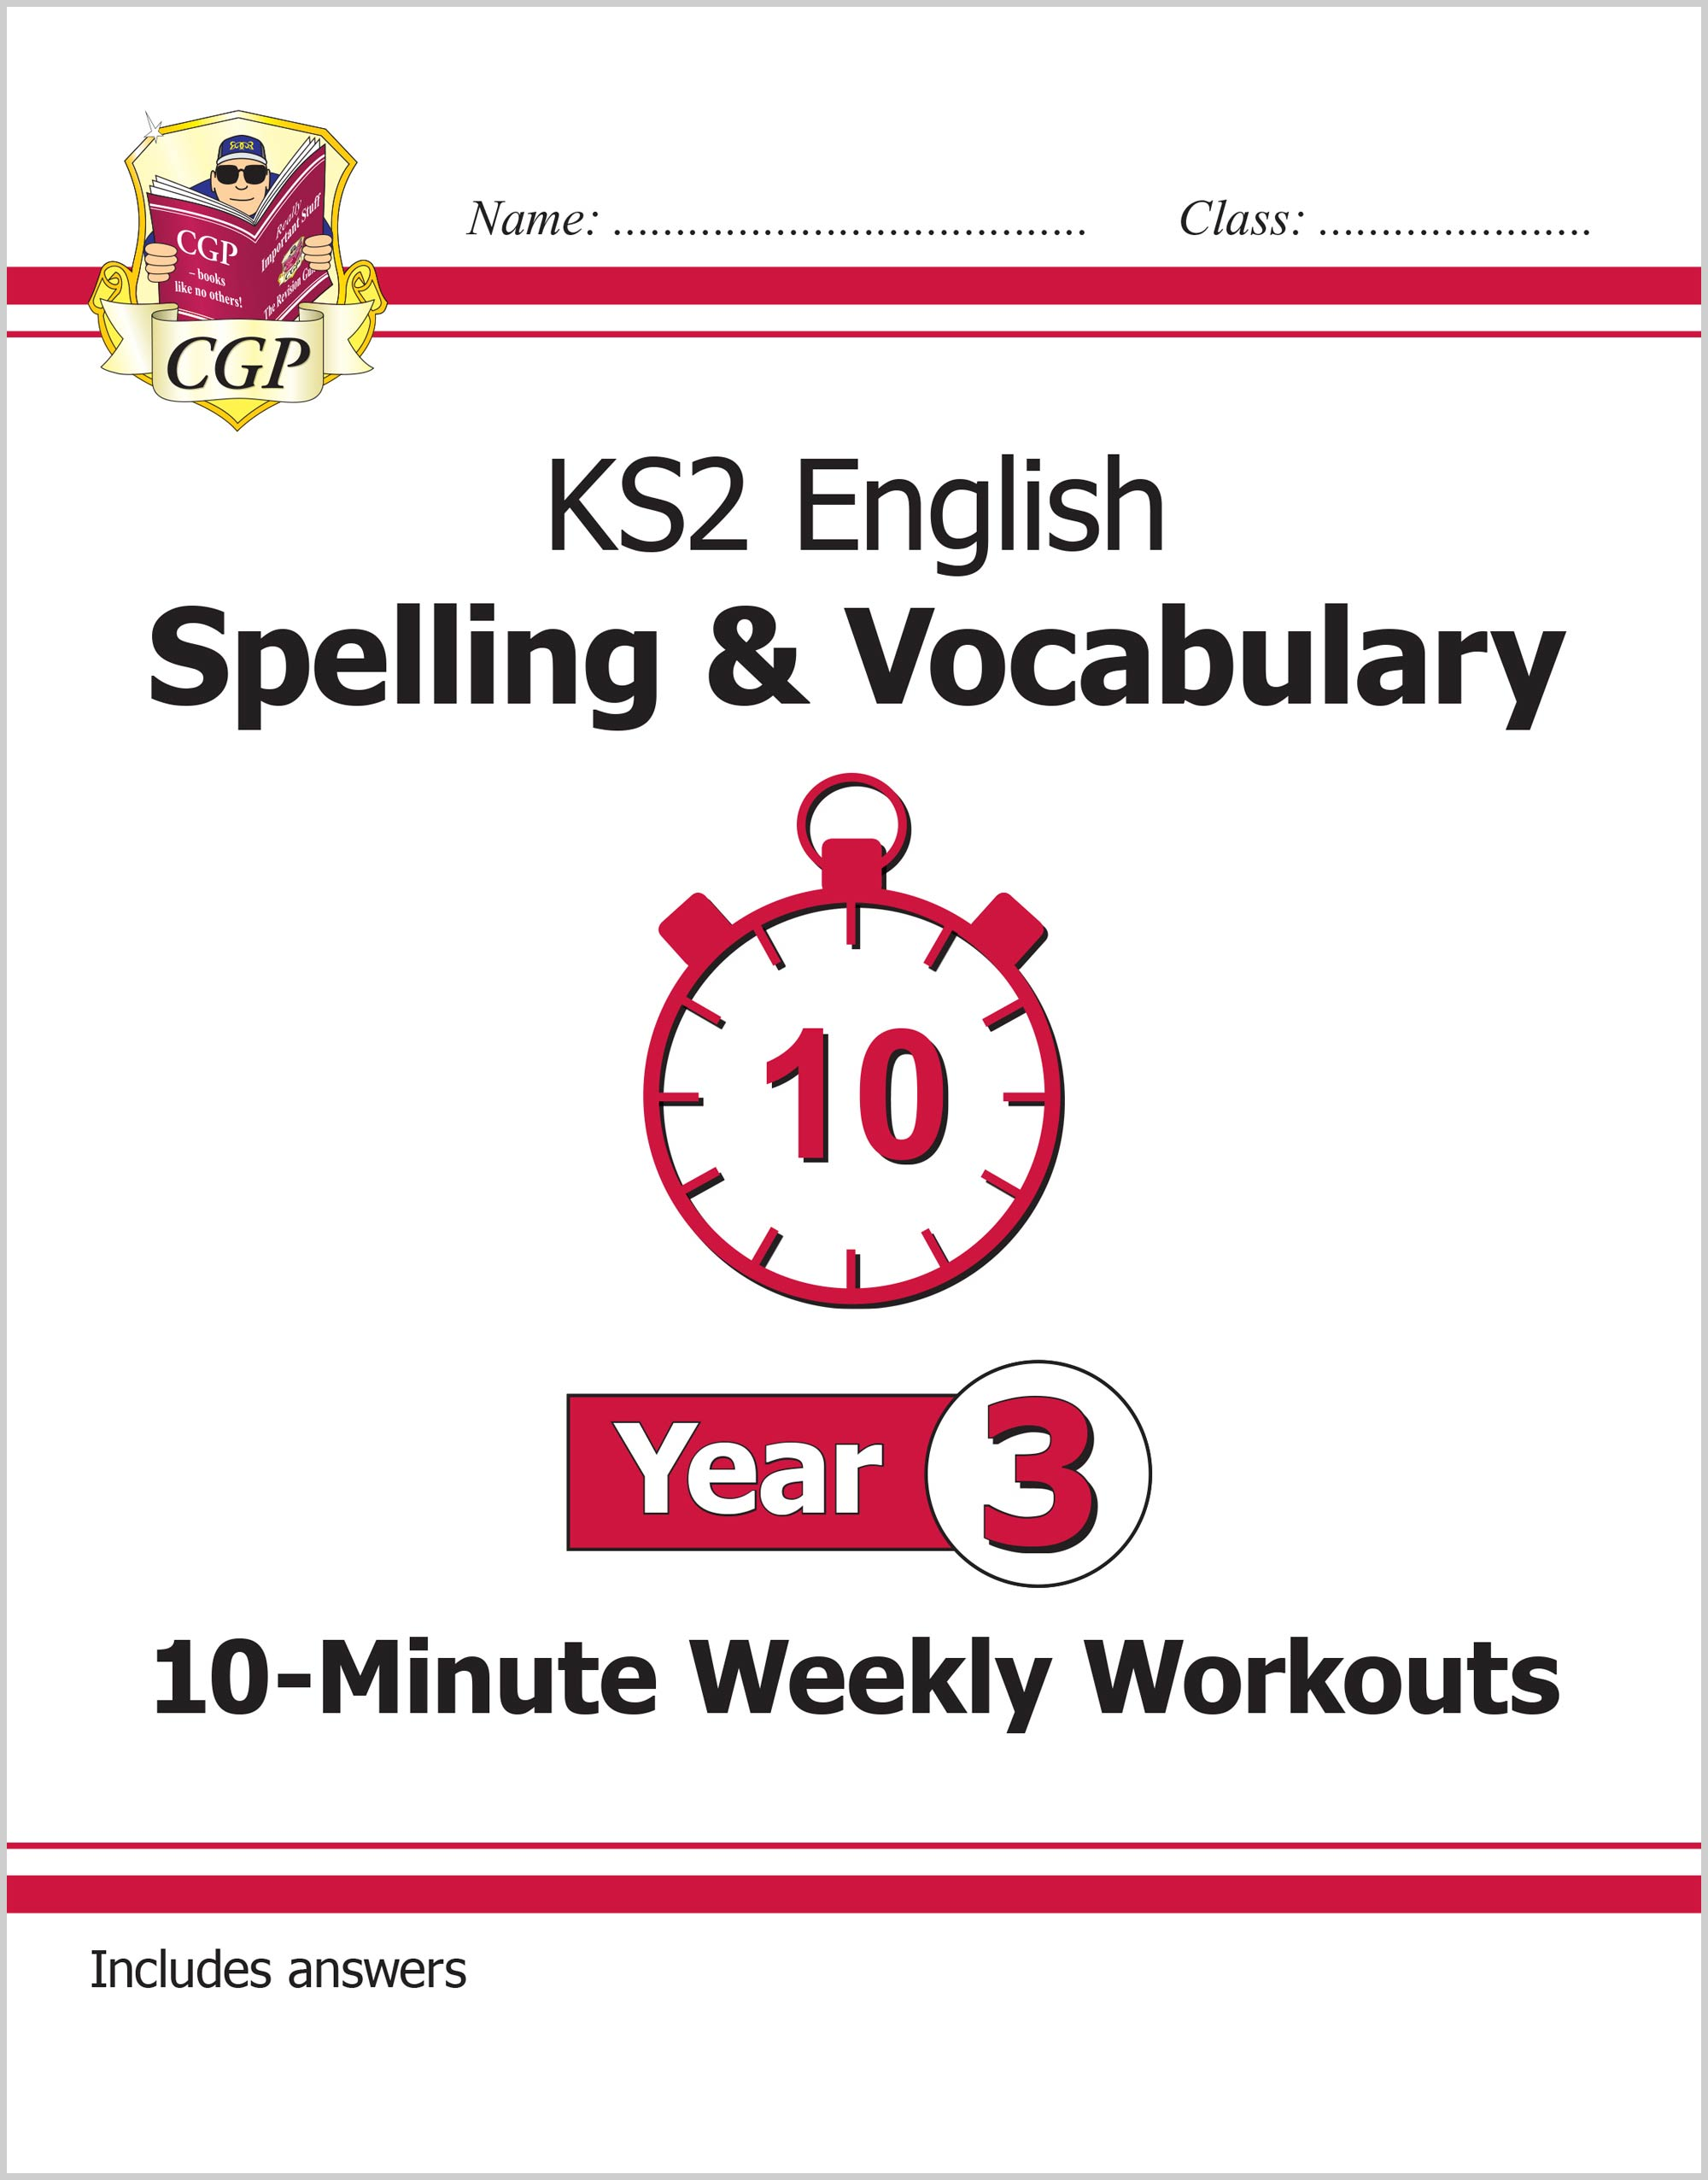 E3VSXW21 - New KS2 English 10-Minute Weekly Workouts: Spelling & Vocabulary - Year 3